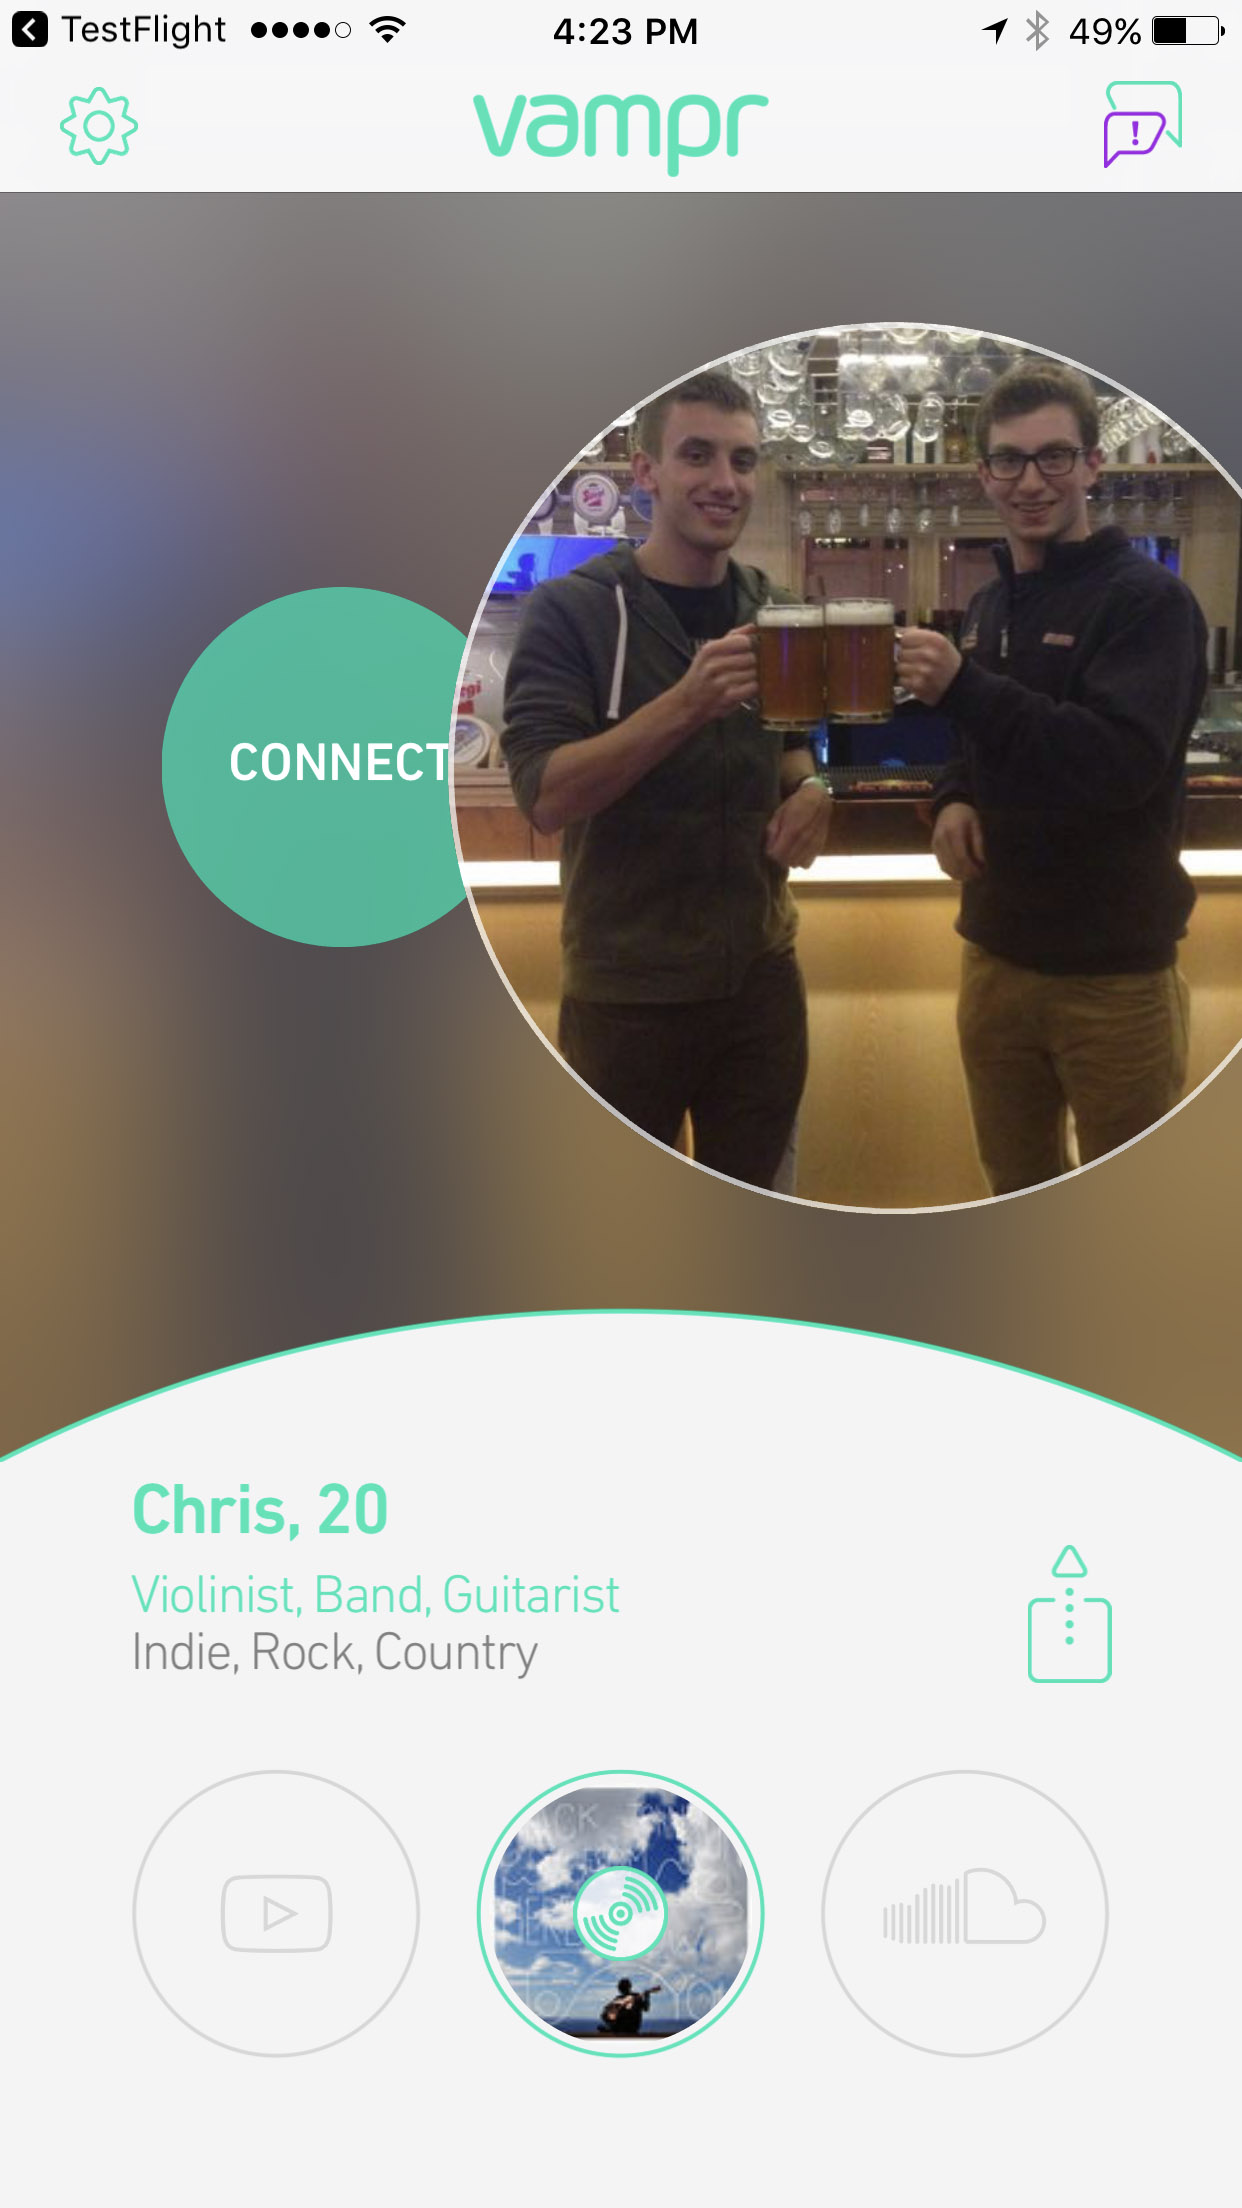 swipe to connect